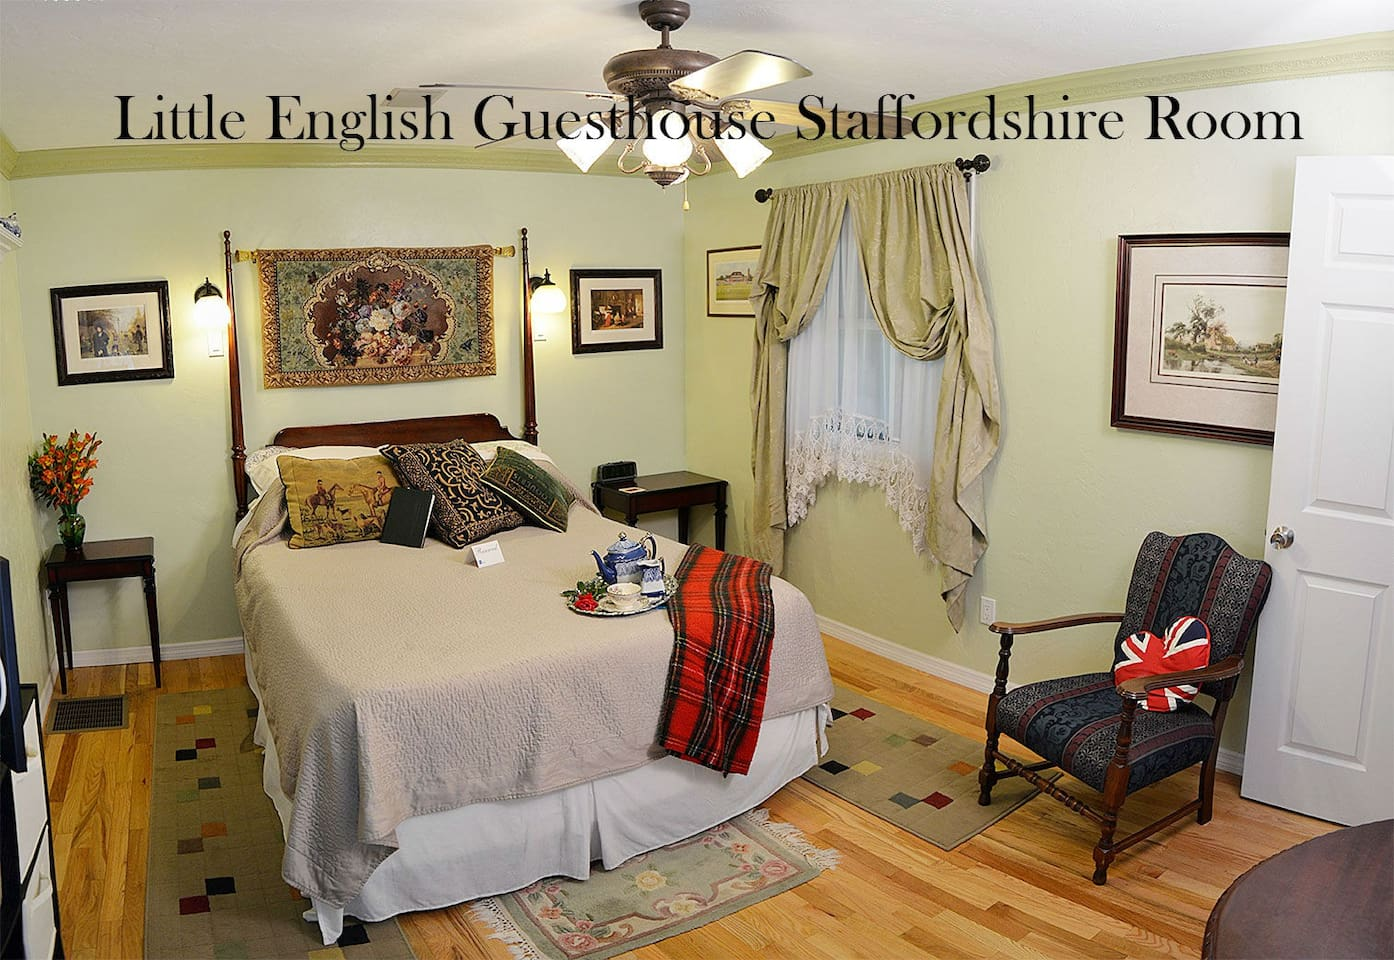 Little English Guesthouse - Staffordshire Room. Queen bed with private ensuite bathroom. Window opens into our conservatory where you can sit and relax with a cup of tea! More photos available on our website where you can also book direct!